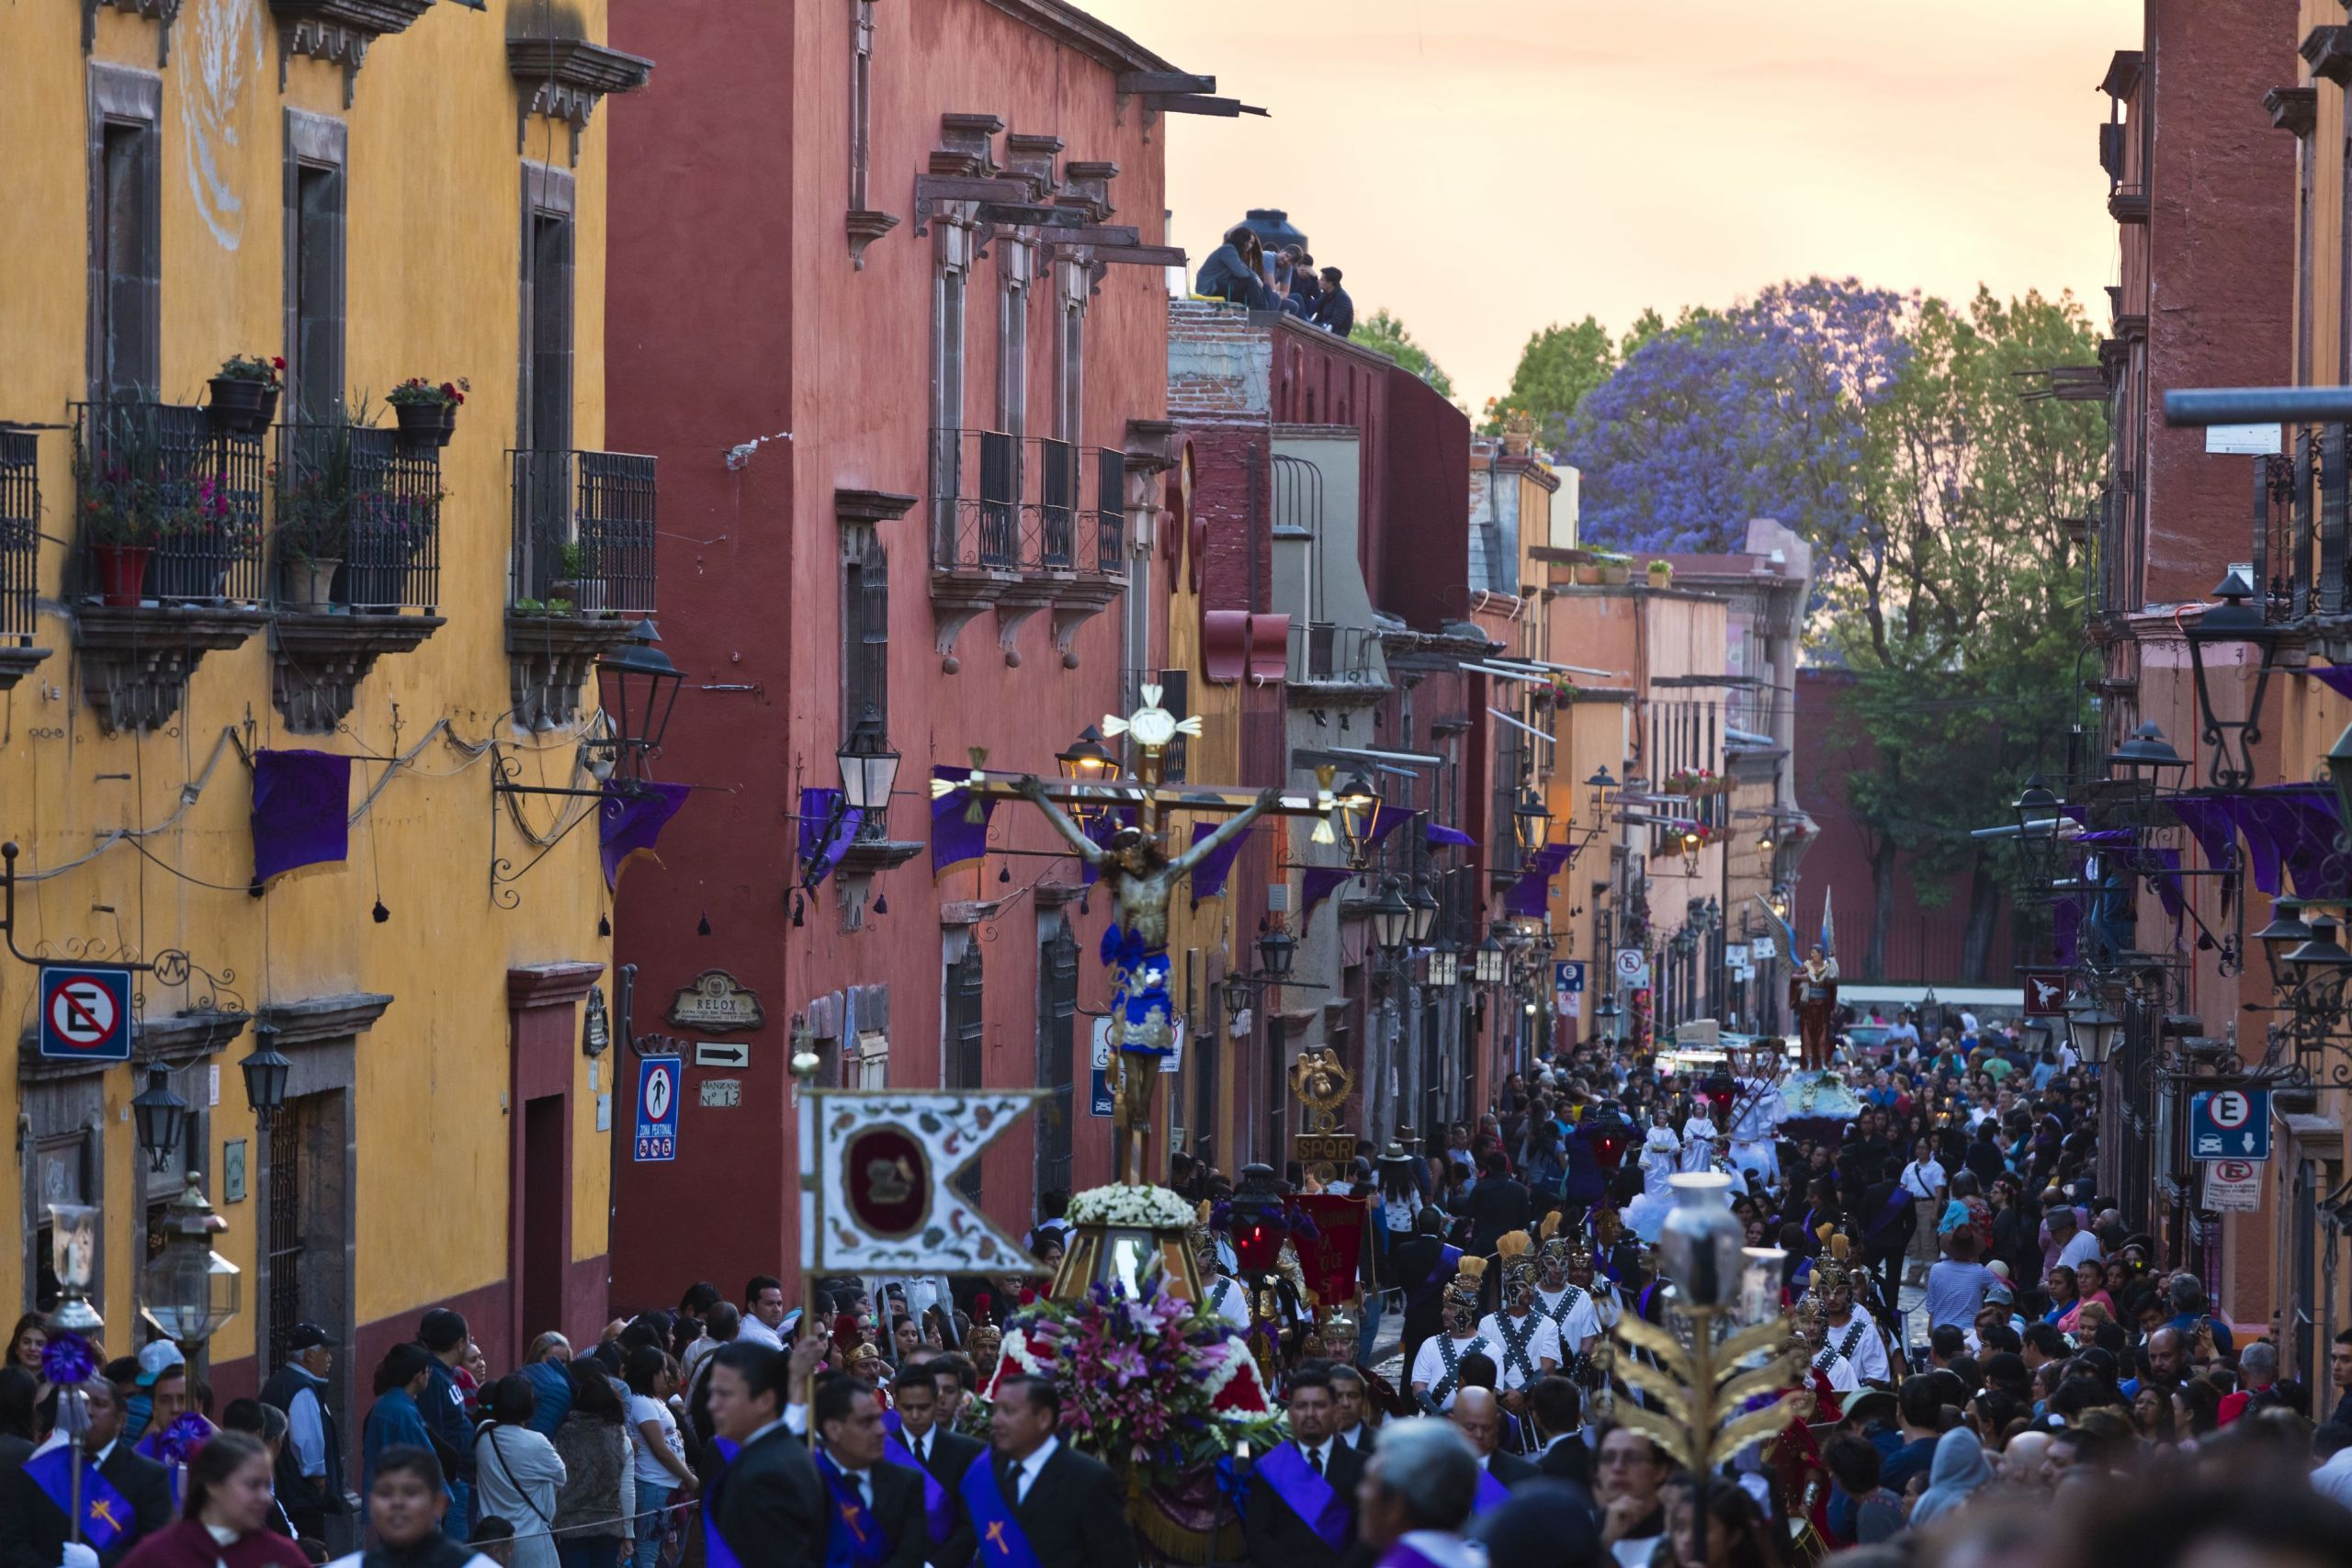 a statue of jesus on the cross is carried in the good friday procession known as the santo entierro from the oratorio church san miguel de allende mexico 5c2239c546e0fb d9d5